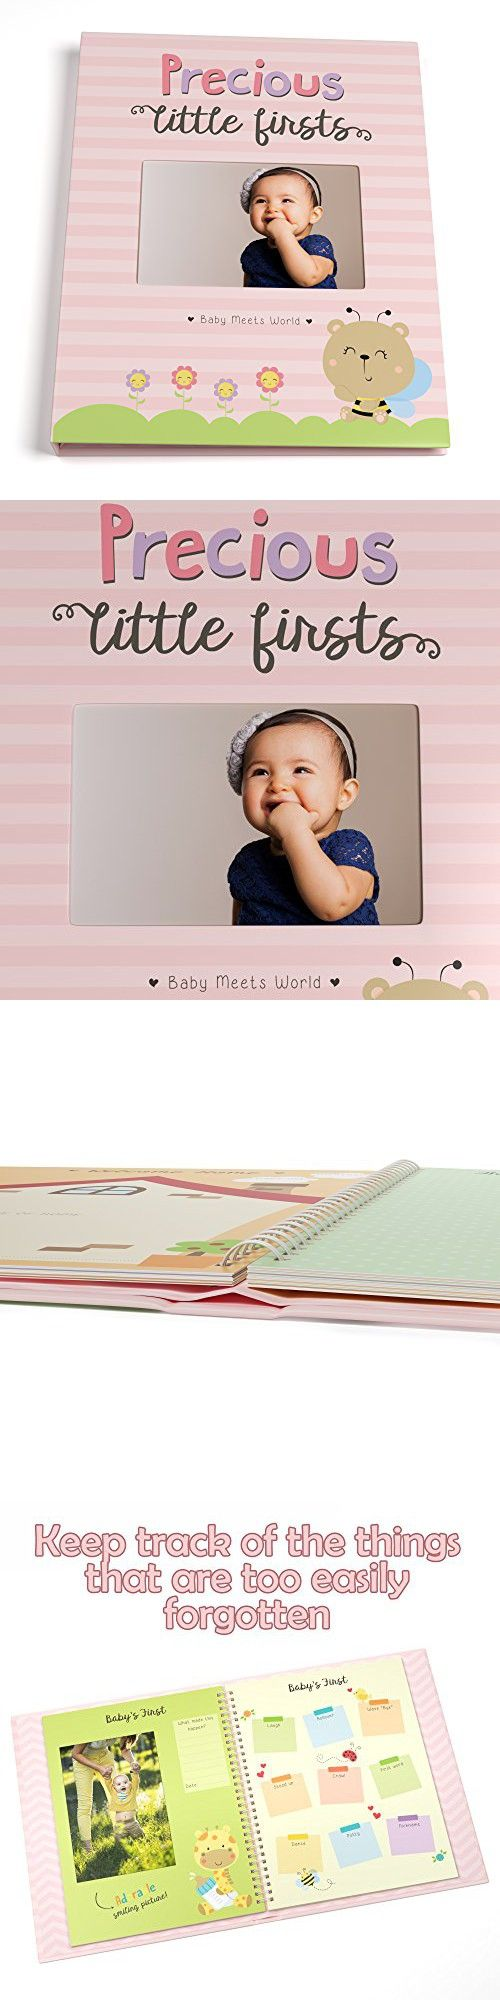 Baby Memory Book for Girls First Five Years, Record Your Child's Development in a Keepsake Journal, Modern Photo Album and Baby Shower Guestbook, 9 Inch x 11.5 Inch Cover